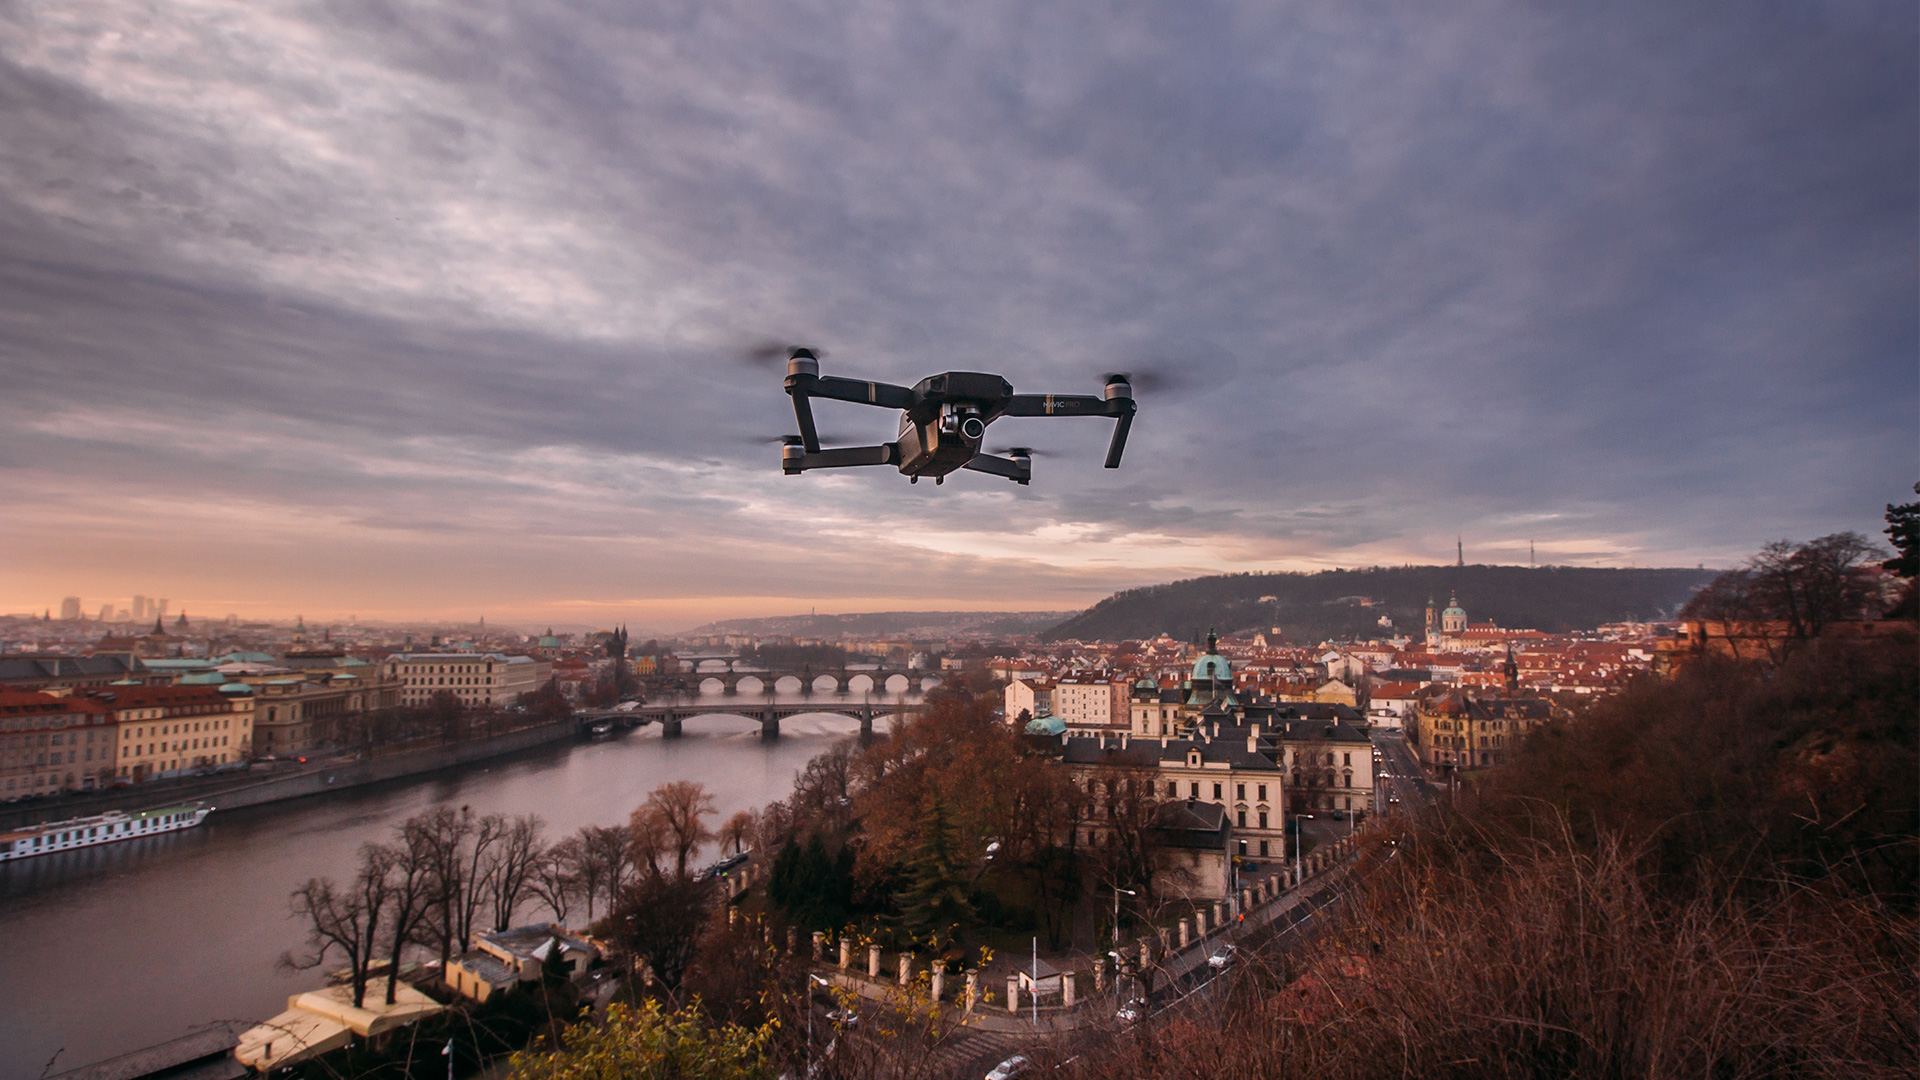 drone flies above an old city